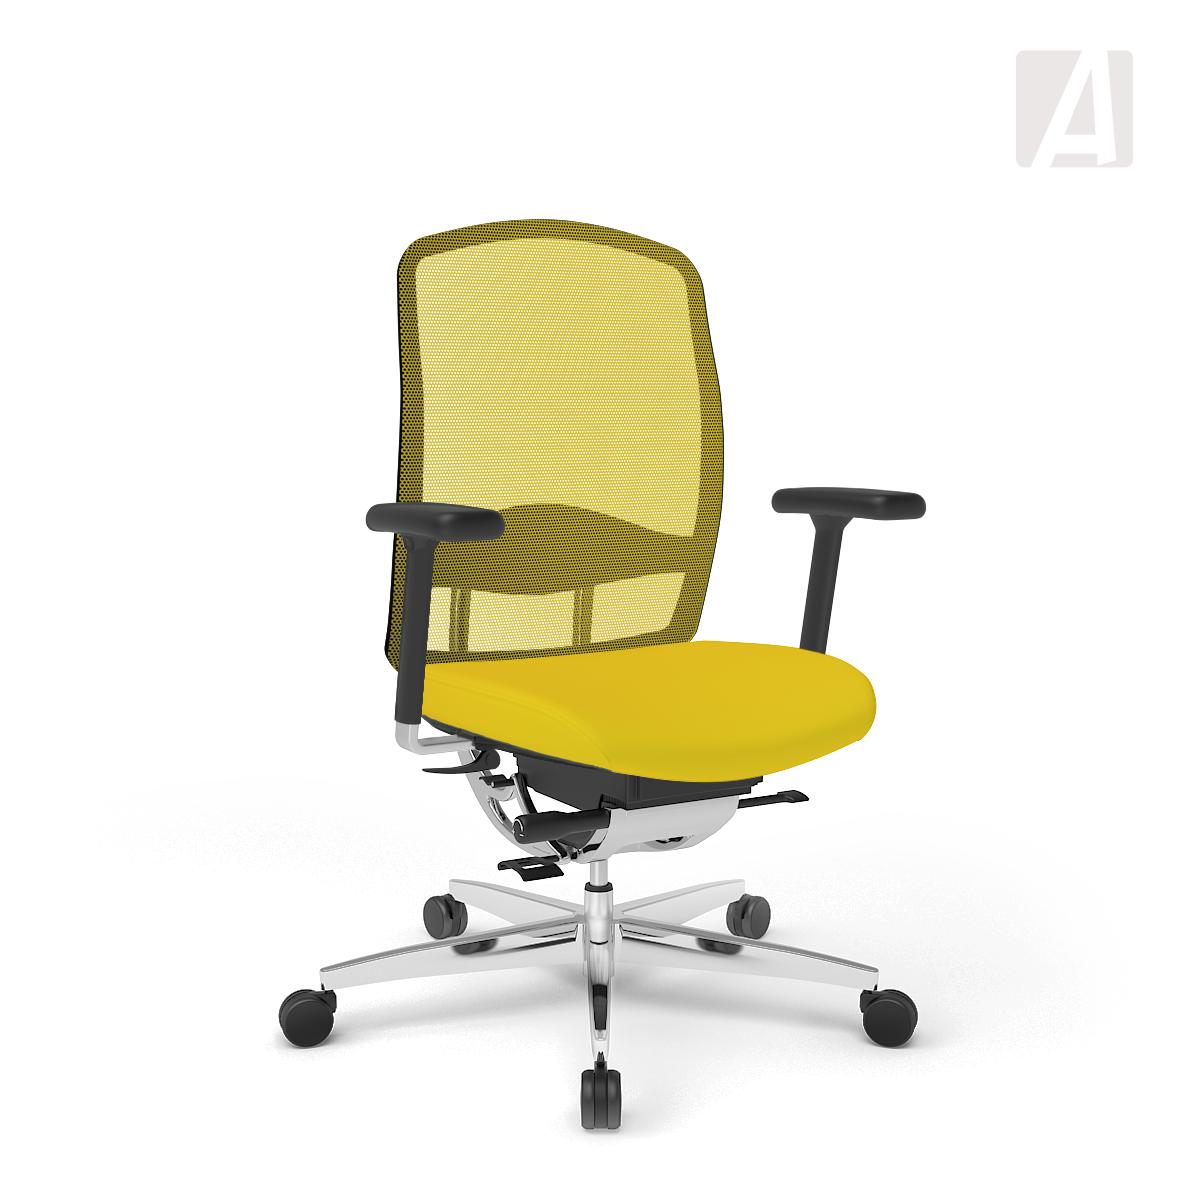 wagner office chair alumedic 10 light yellow. Black Bedroom Furniture Sets. Home Design Ideas